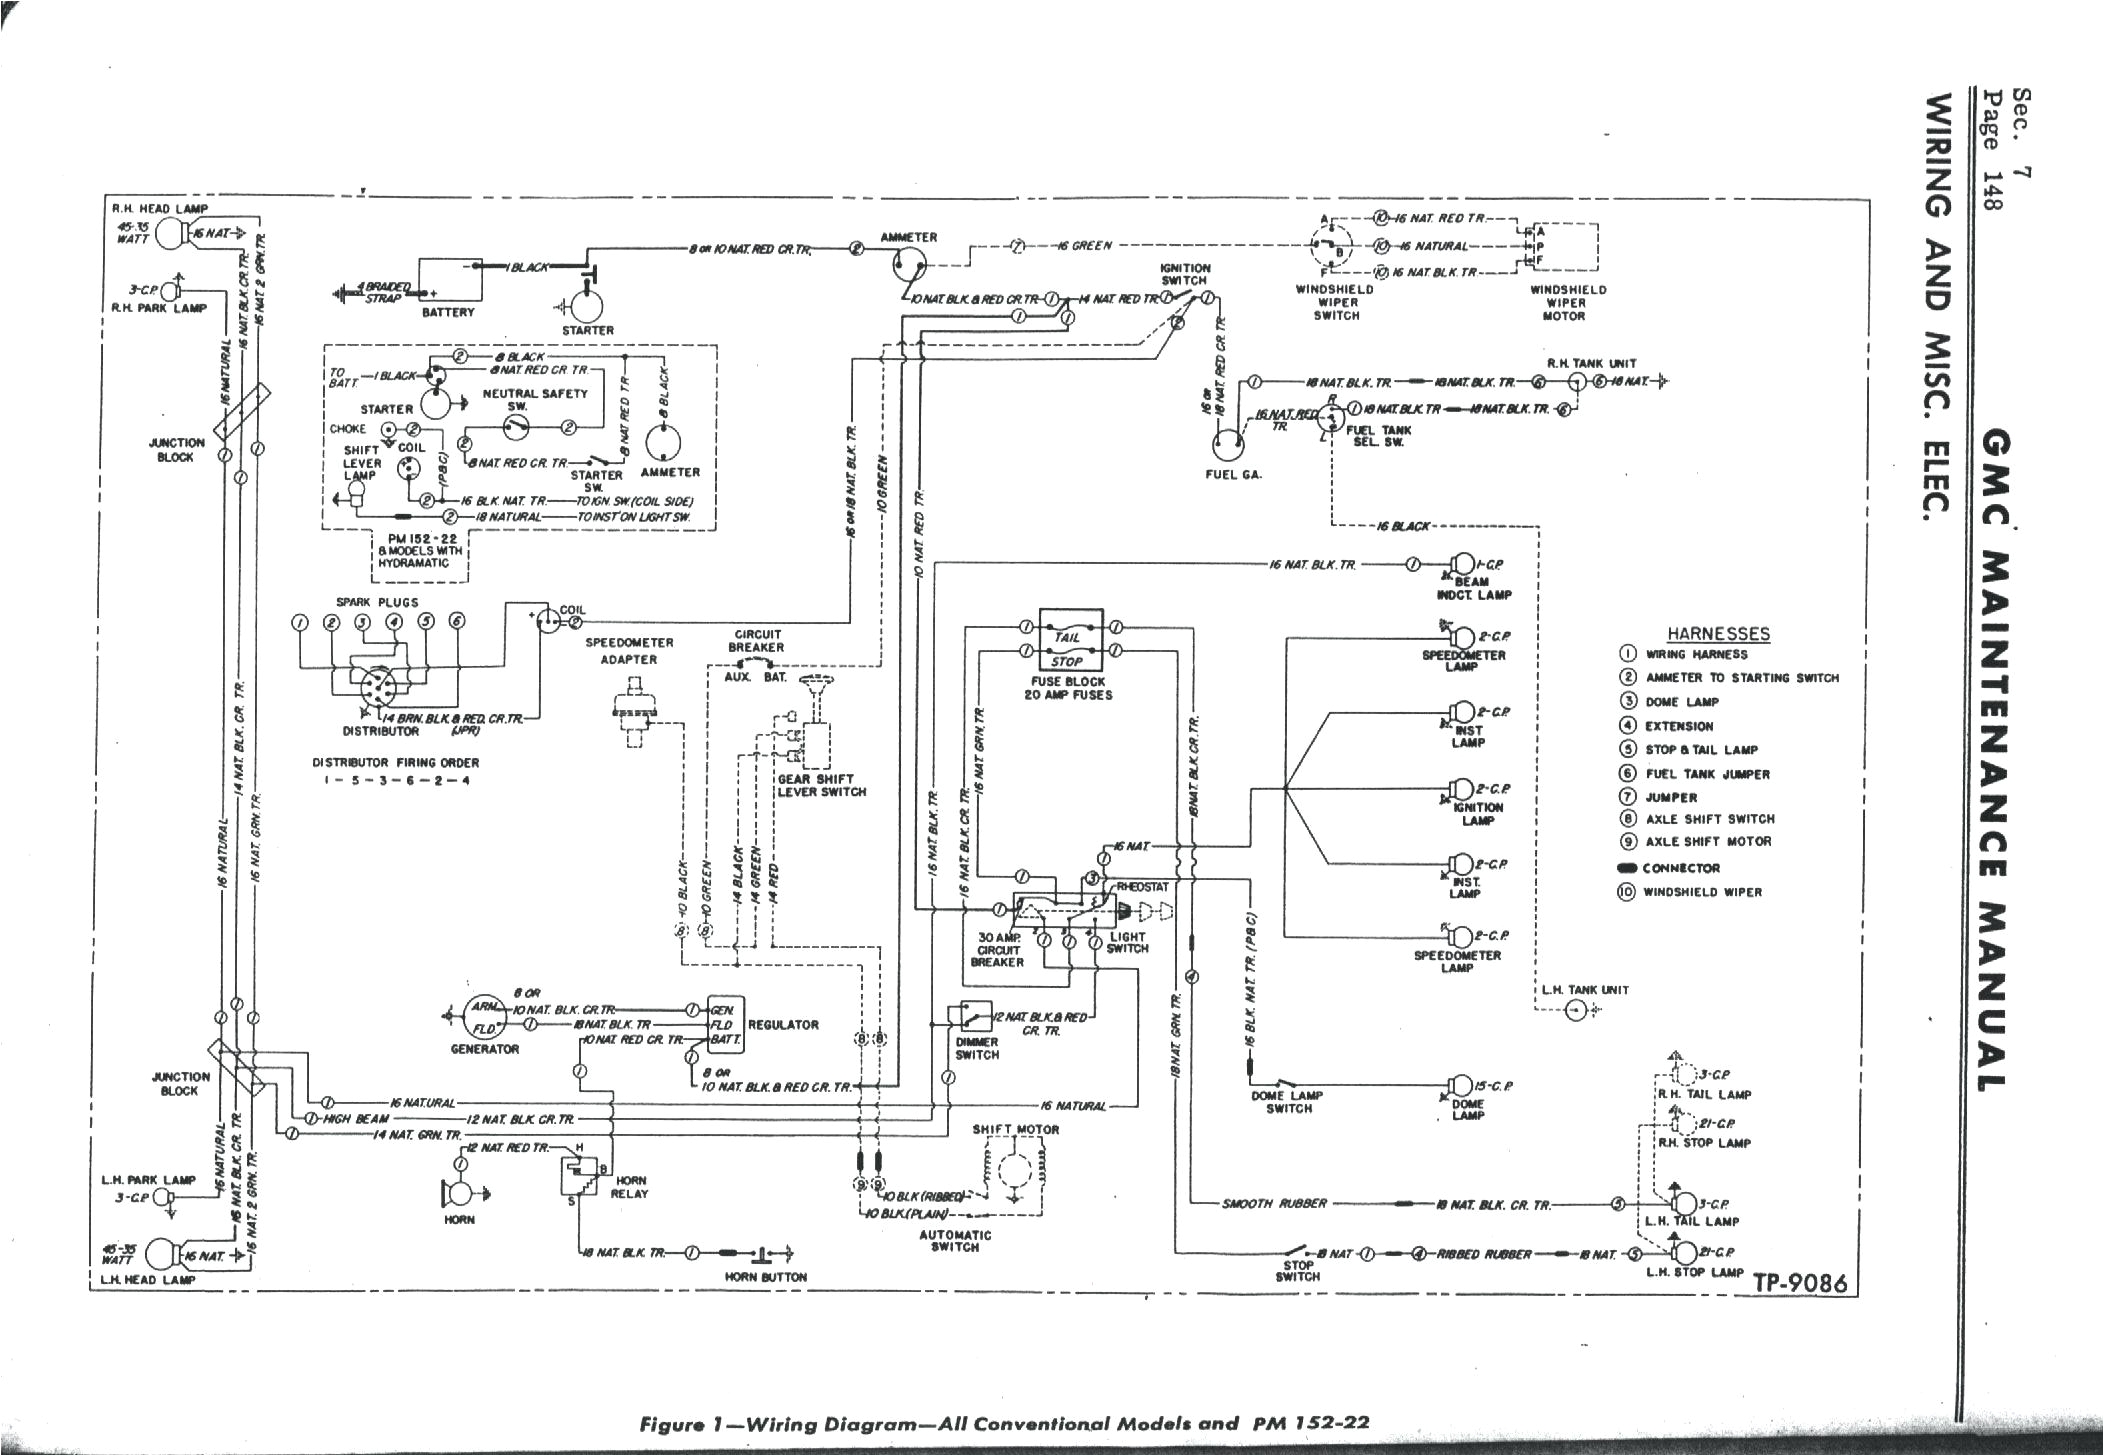 wiring diagram daihatsu ayla wiring diagram used fuse box daihatsu ayla wiring diagrams konsult wiring diagram